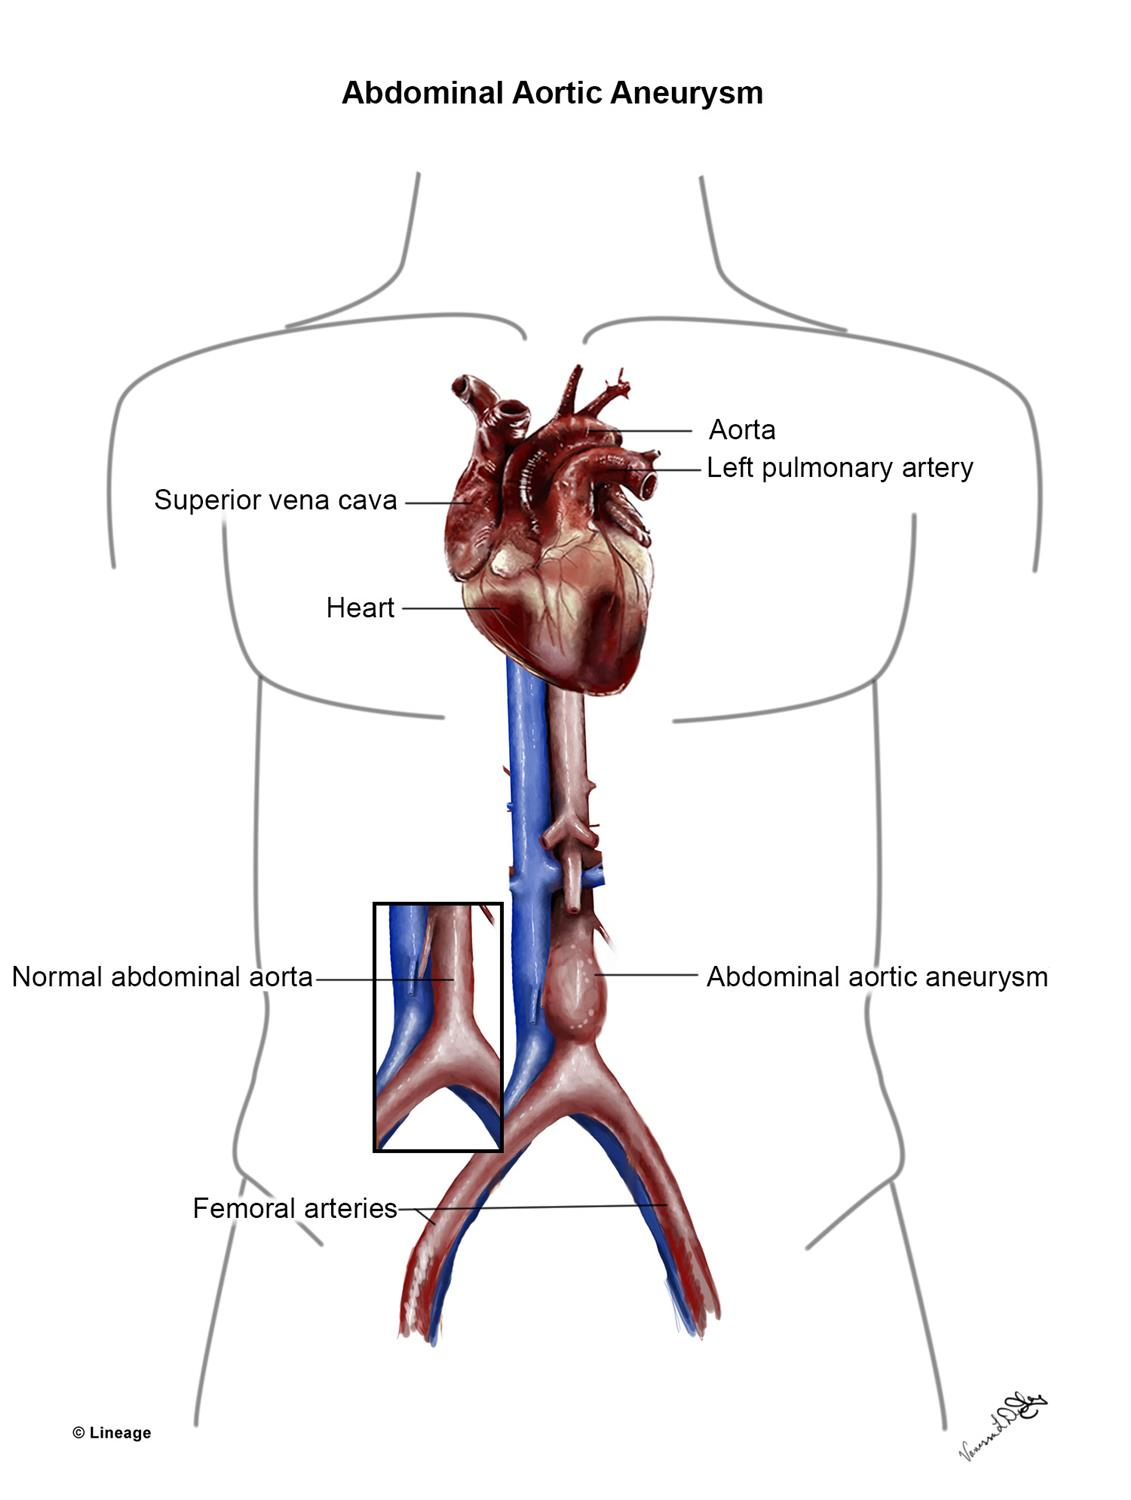 Abdominal Aortic Aneurysm - Cardiovascular - Medbullets Step 2/3